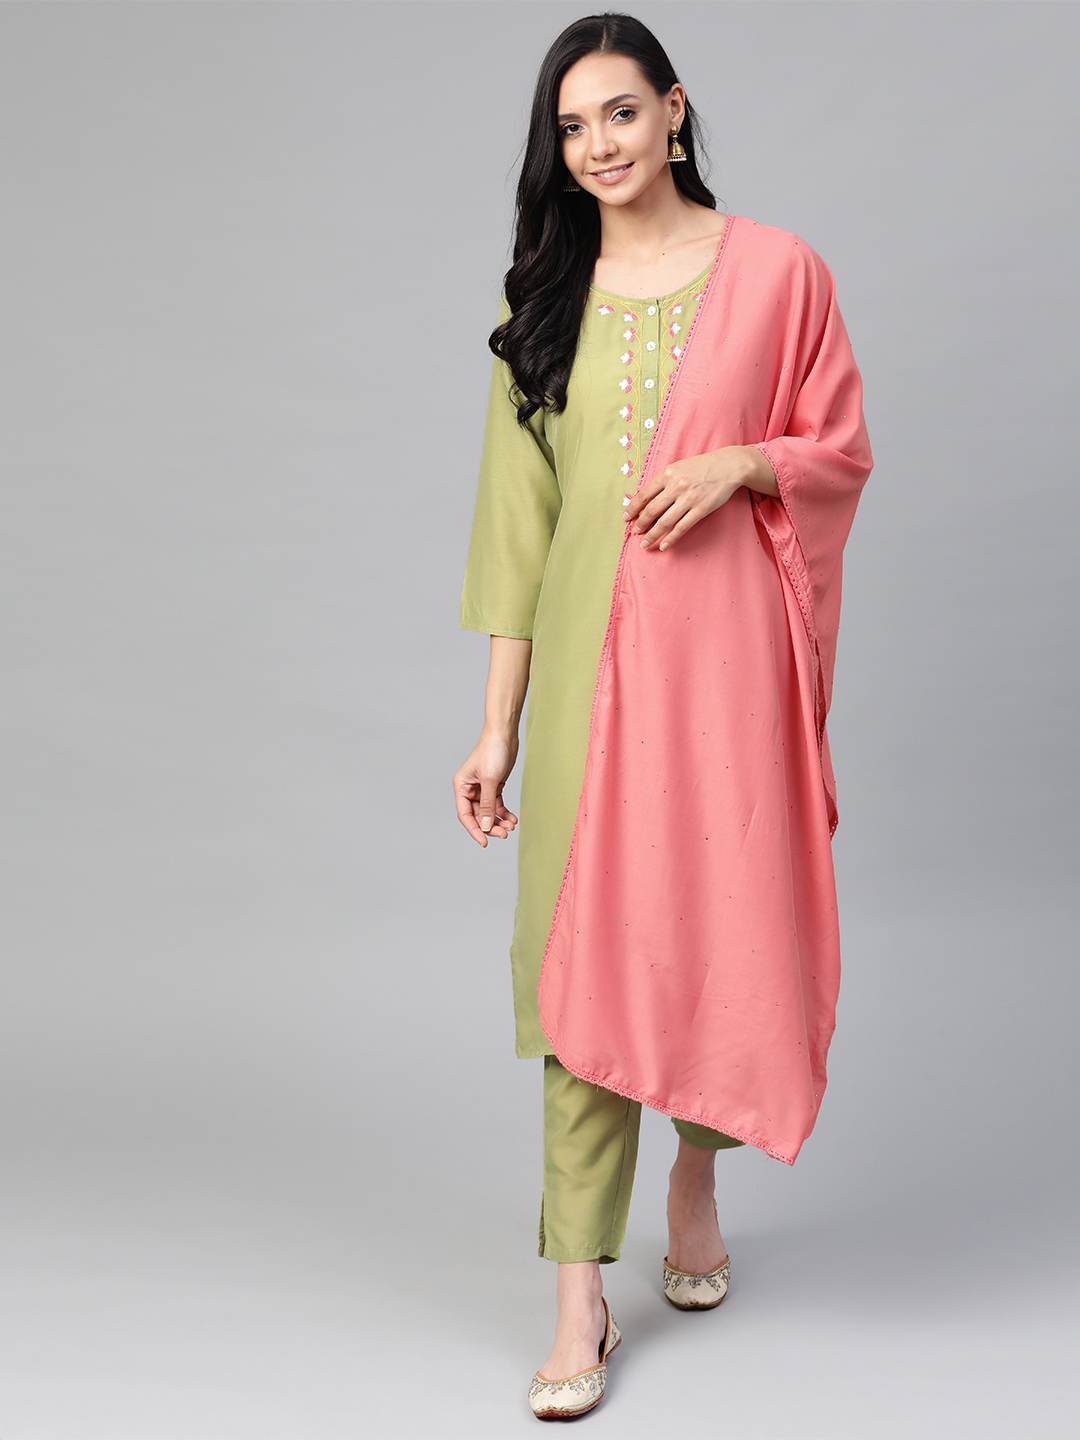 Jompers   Jompers® Women Green Cotton Silk Embroidered Kurta with pants and dupatta  set